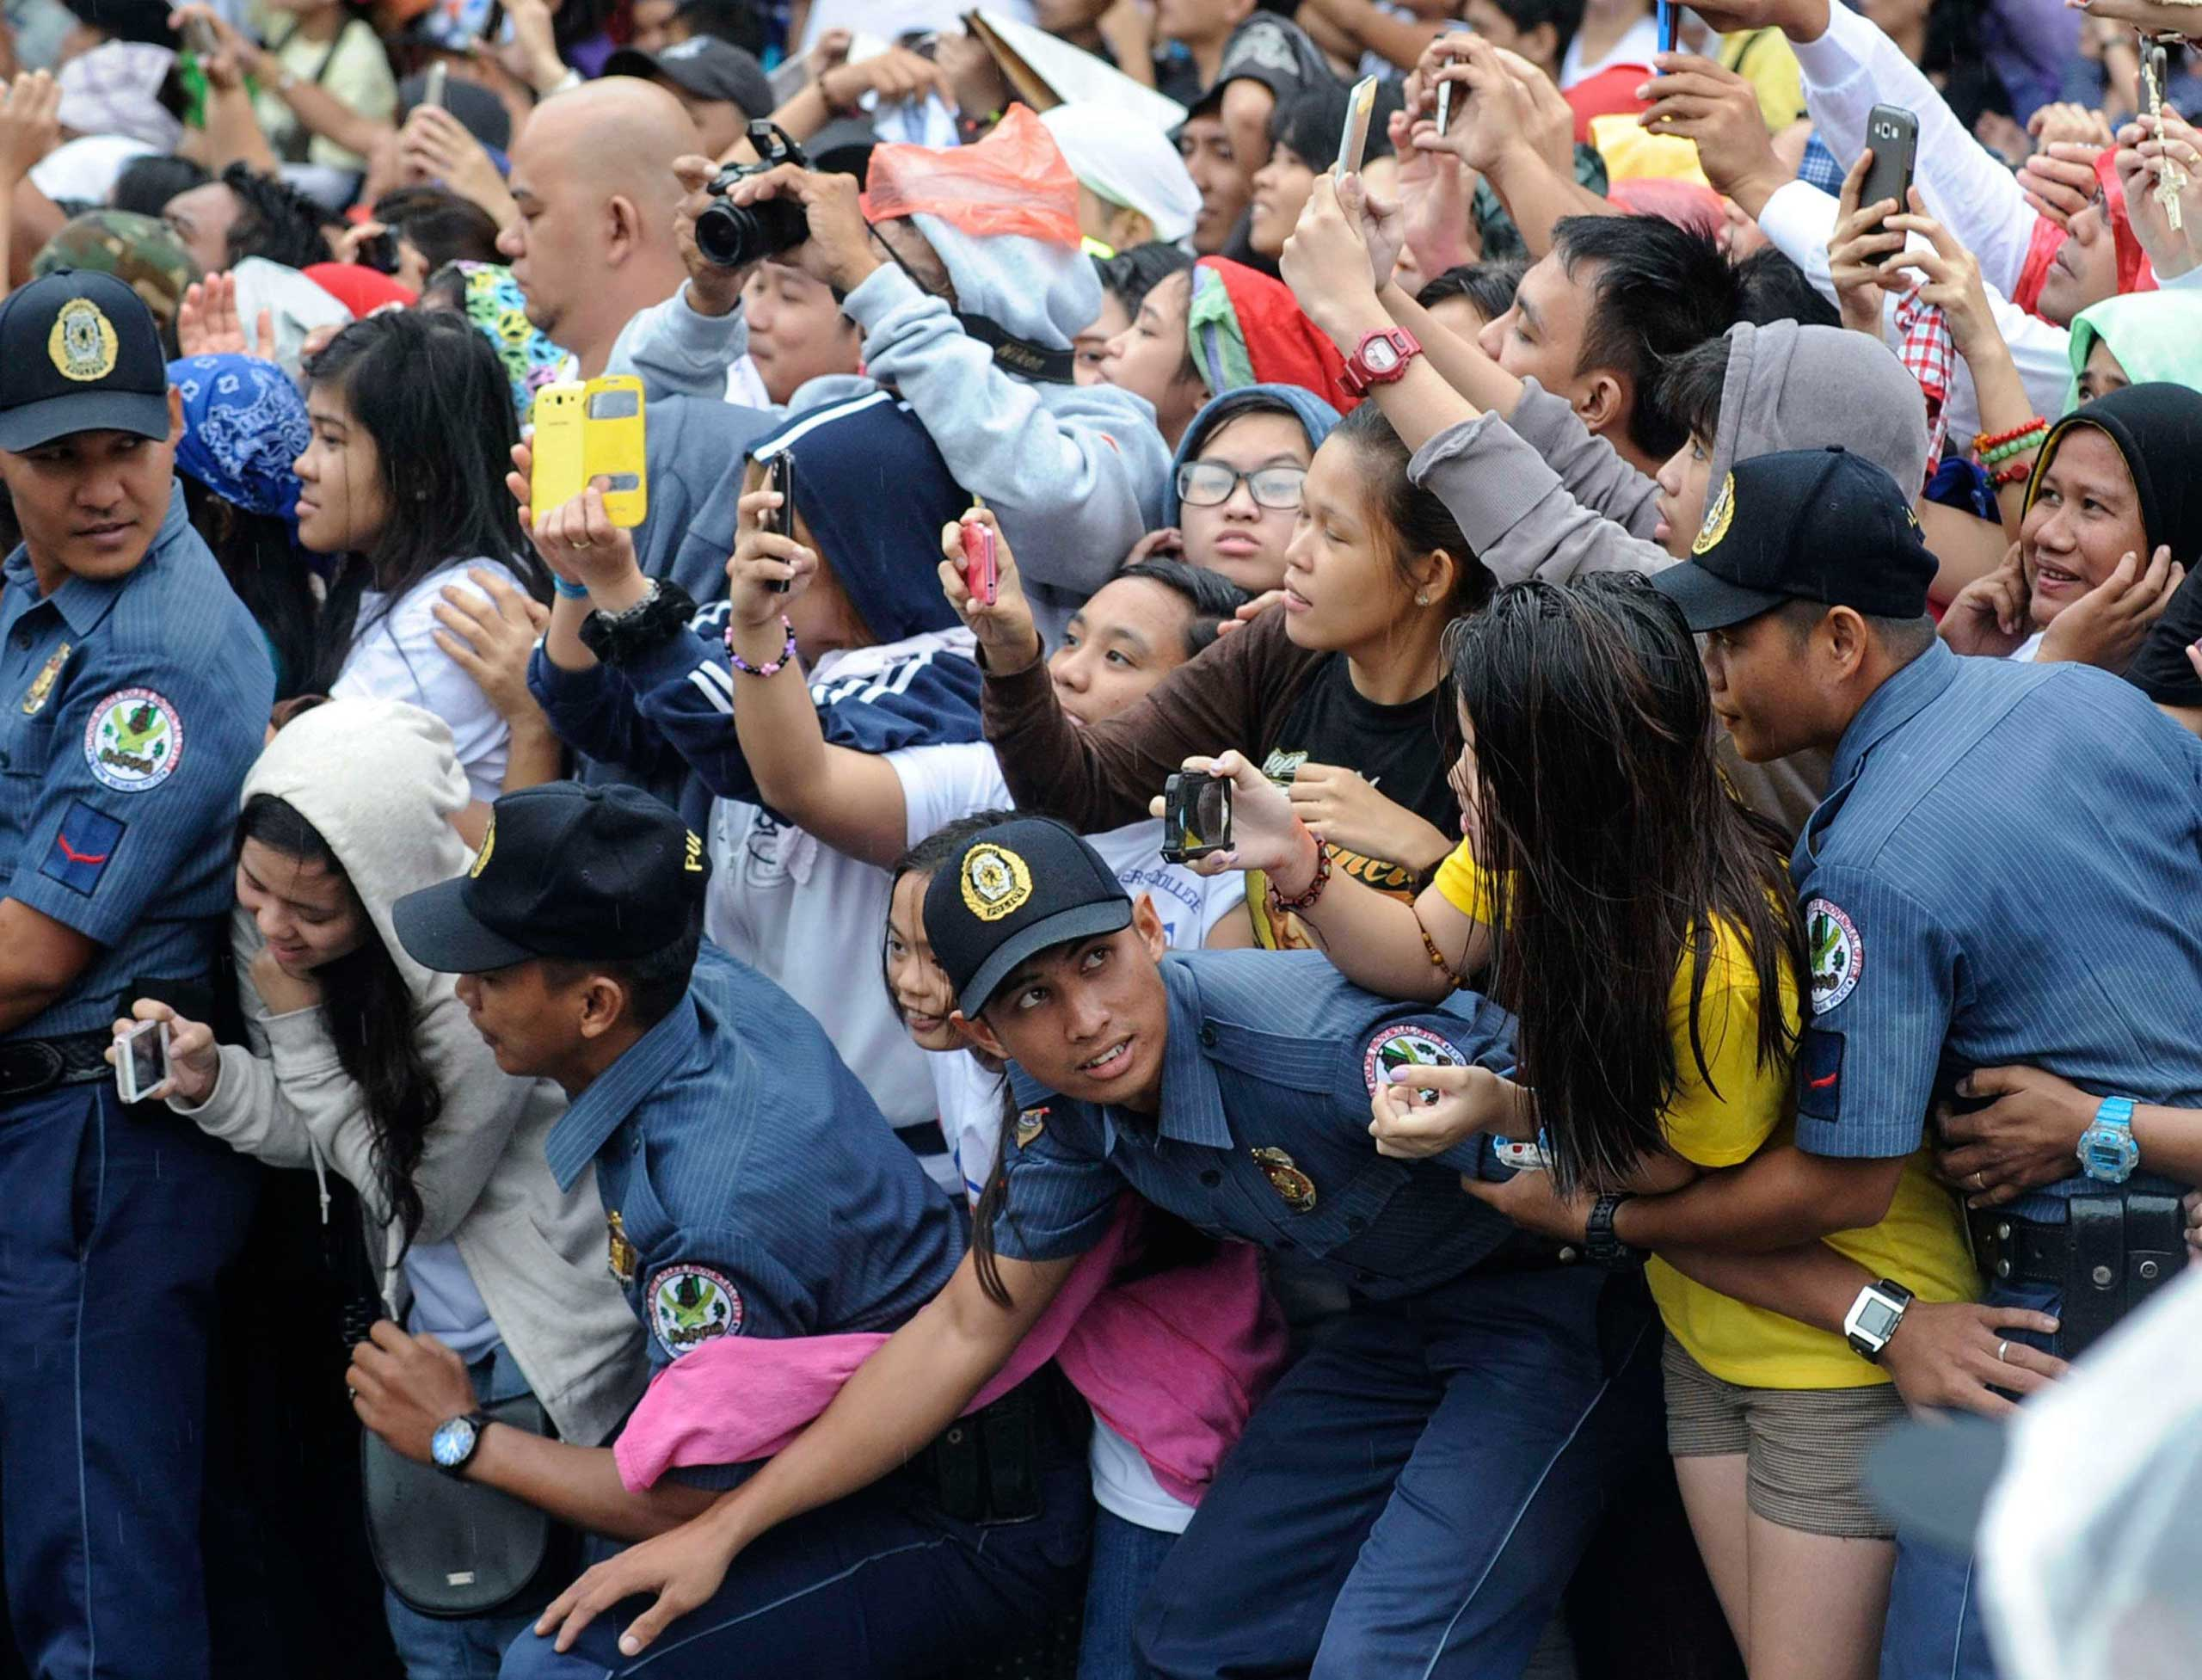 Members of the Philippine National Police prevent well-wishers from moving forward as Pope Francis' motorcade passes by in Manila, Jan. 18, 2015.